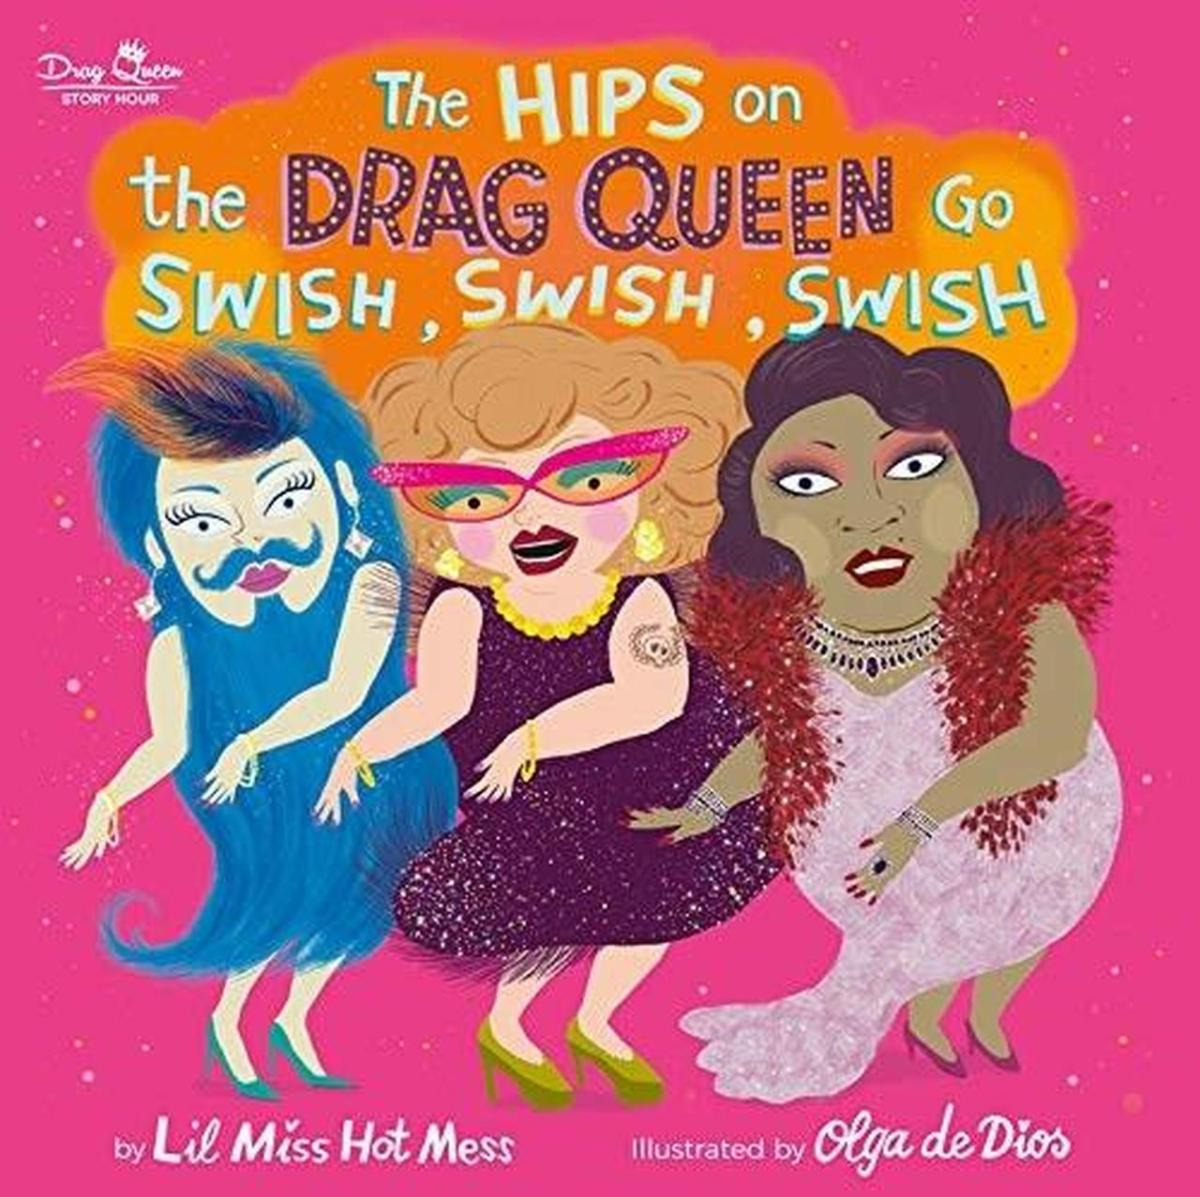 Lil Miss Hot Mess A Los Angeles Based Drag Queen Author Of The Hips On The Drag Queen Go Swish Swish Swish